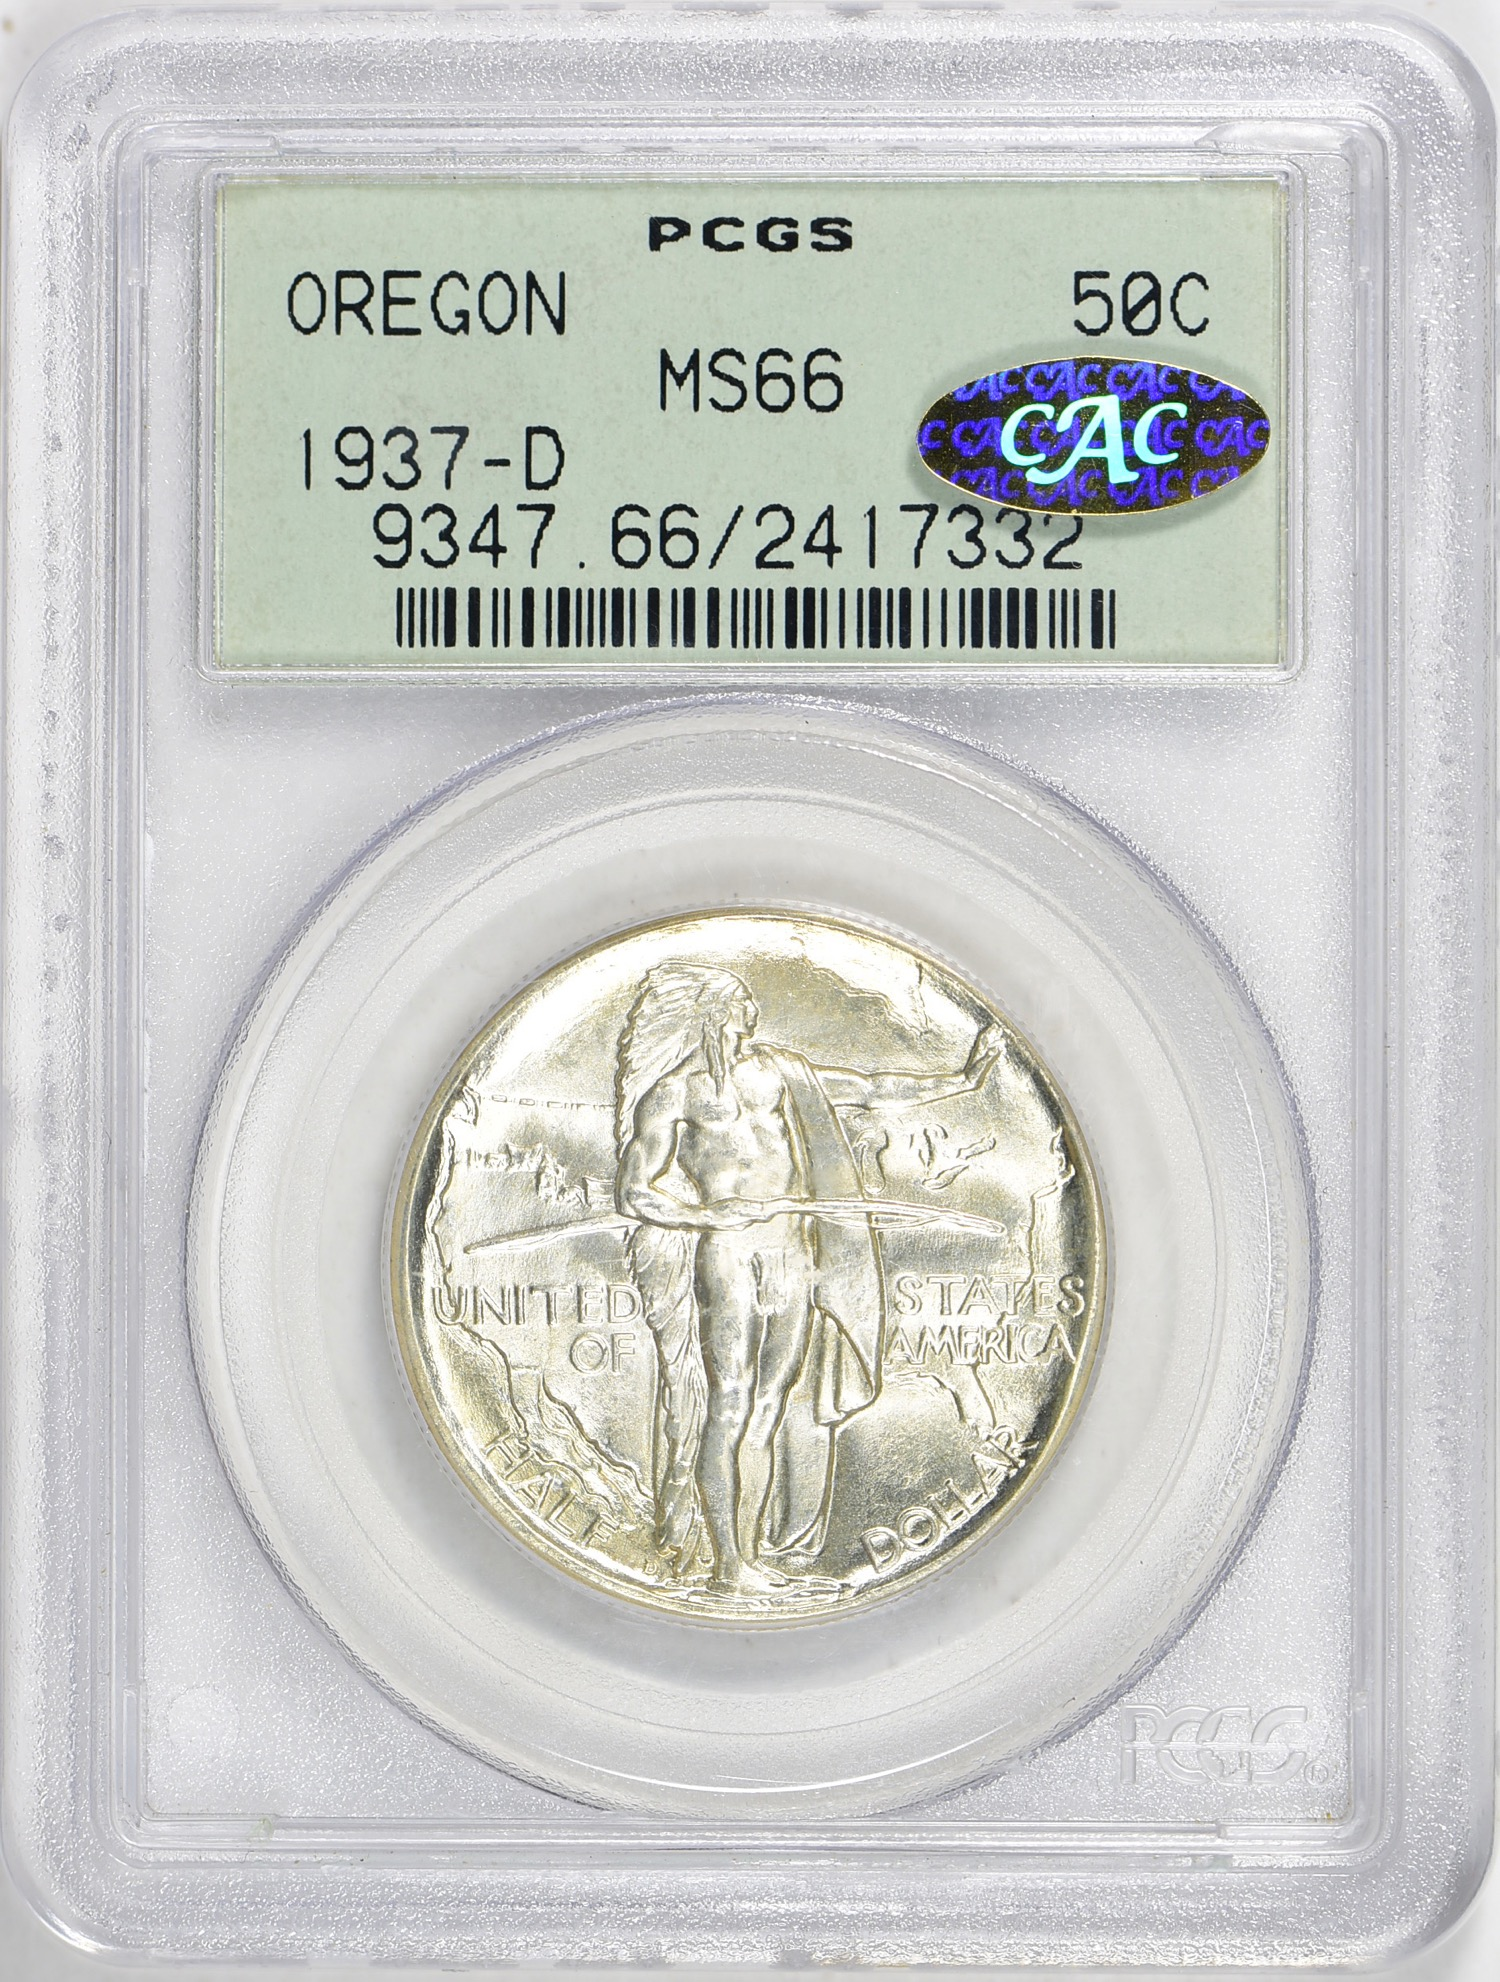 1937-D MS66 CAC(Gold) OGH - Acquired 6.2.19 GreatCollections. Another CAC Gold OGH (sticker looks blue in the picture but it is indeed gold in life).